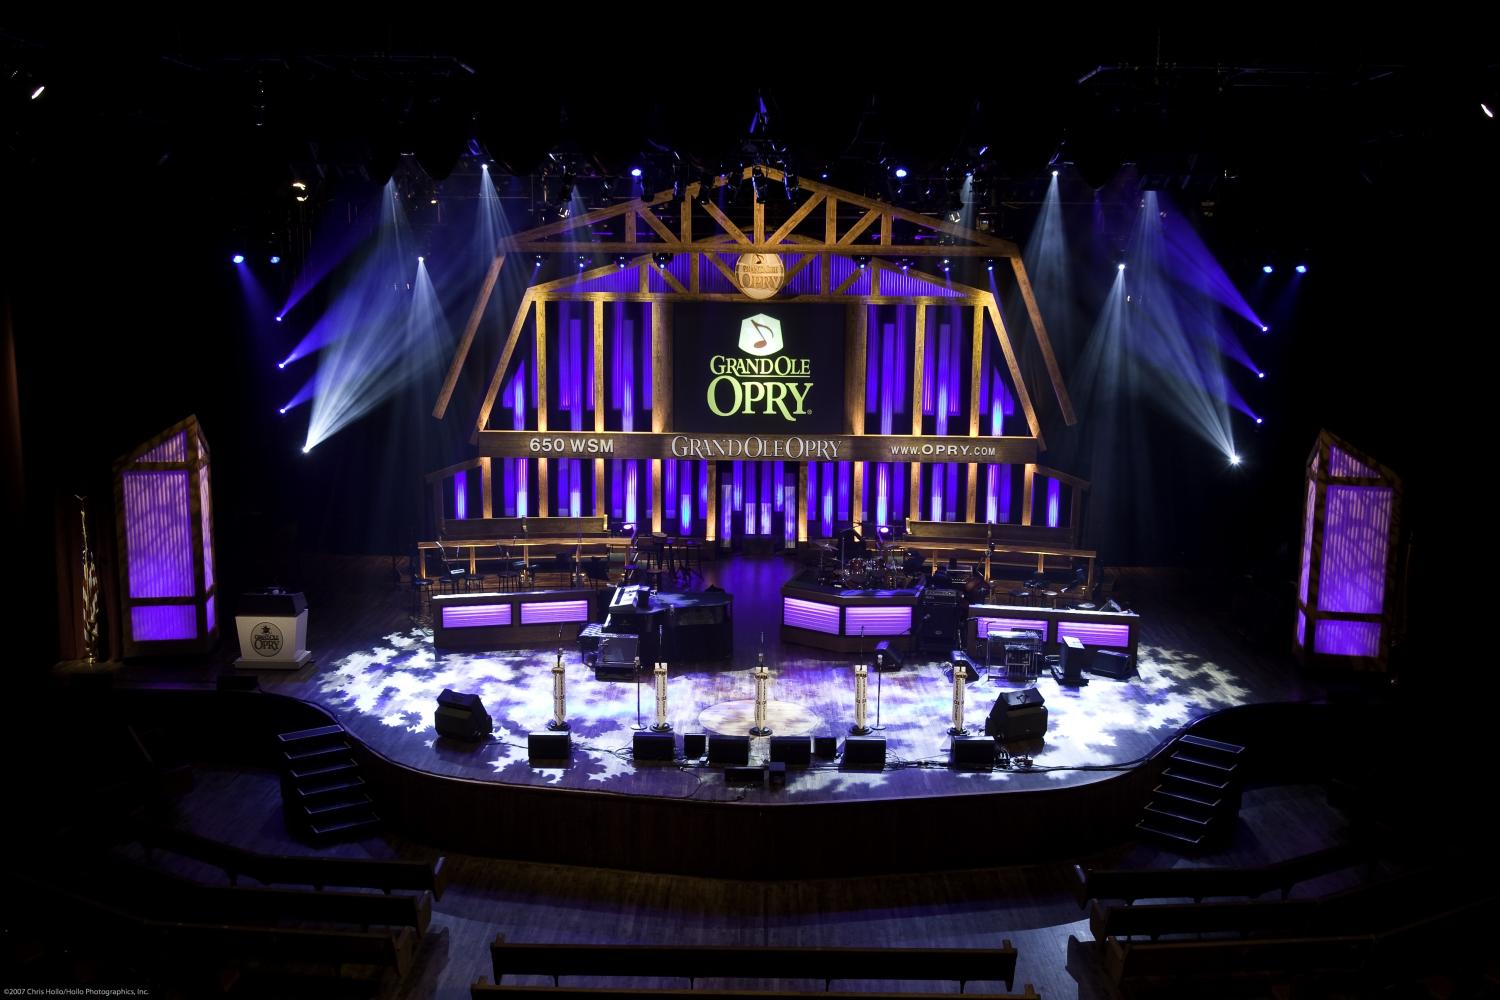 Best of: Grand Ole Opry